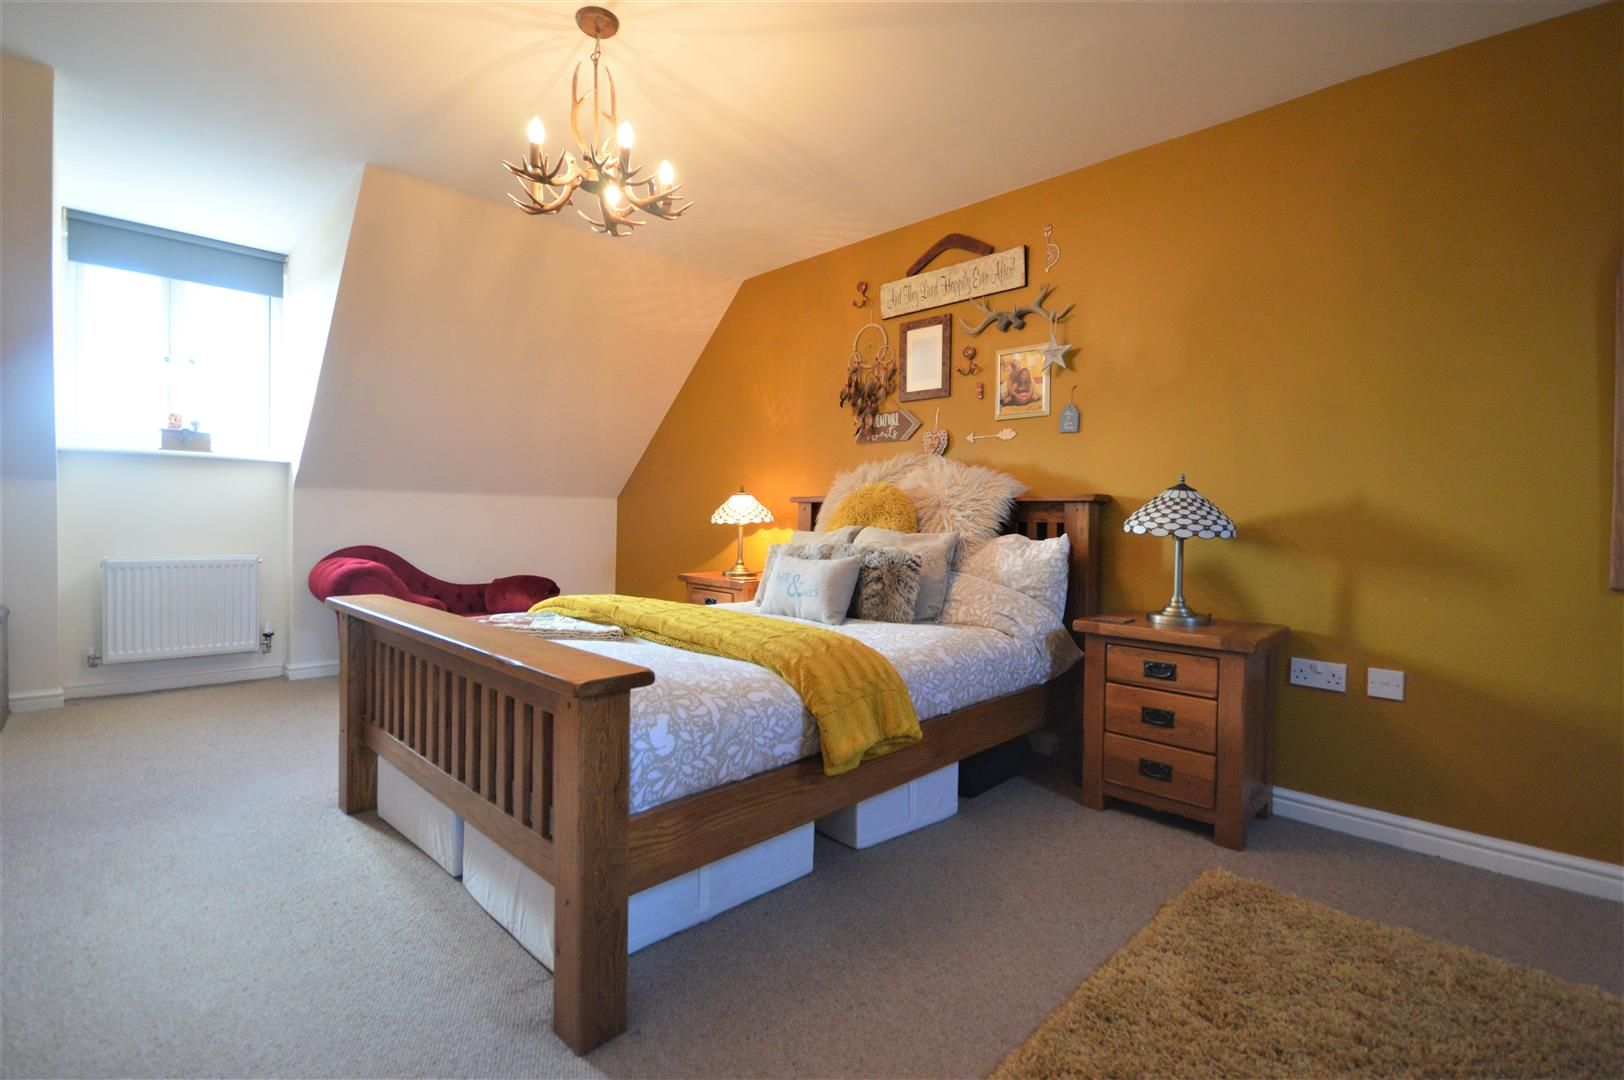 4 bed semi-detached for sale in Leominster  - Property Image 2